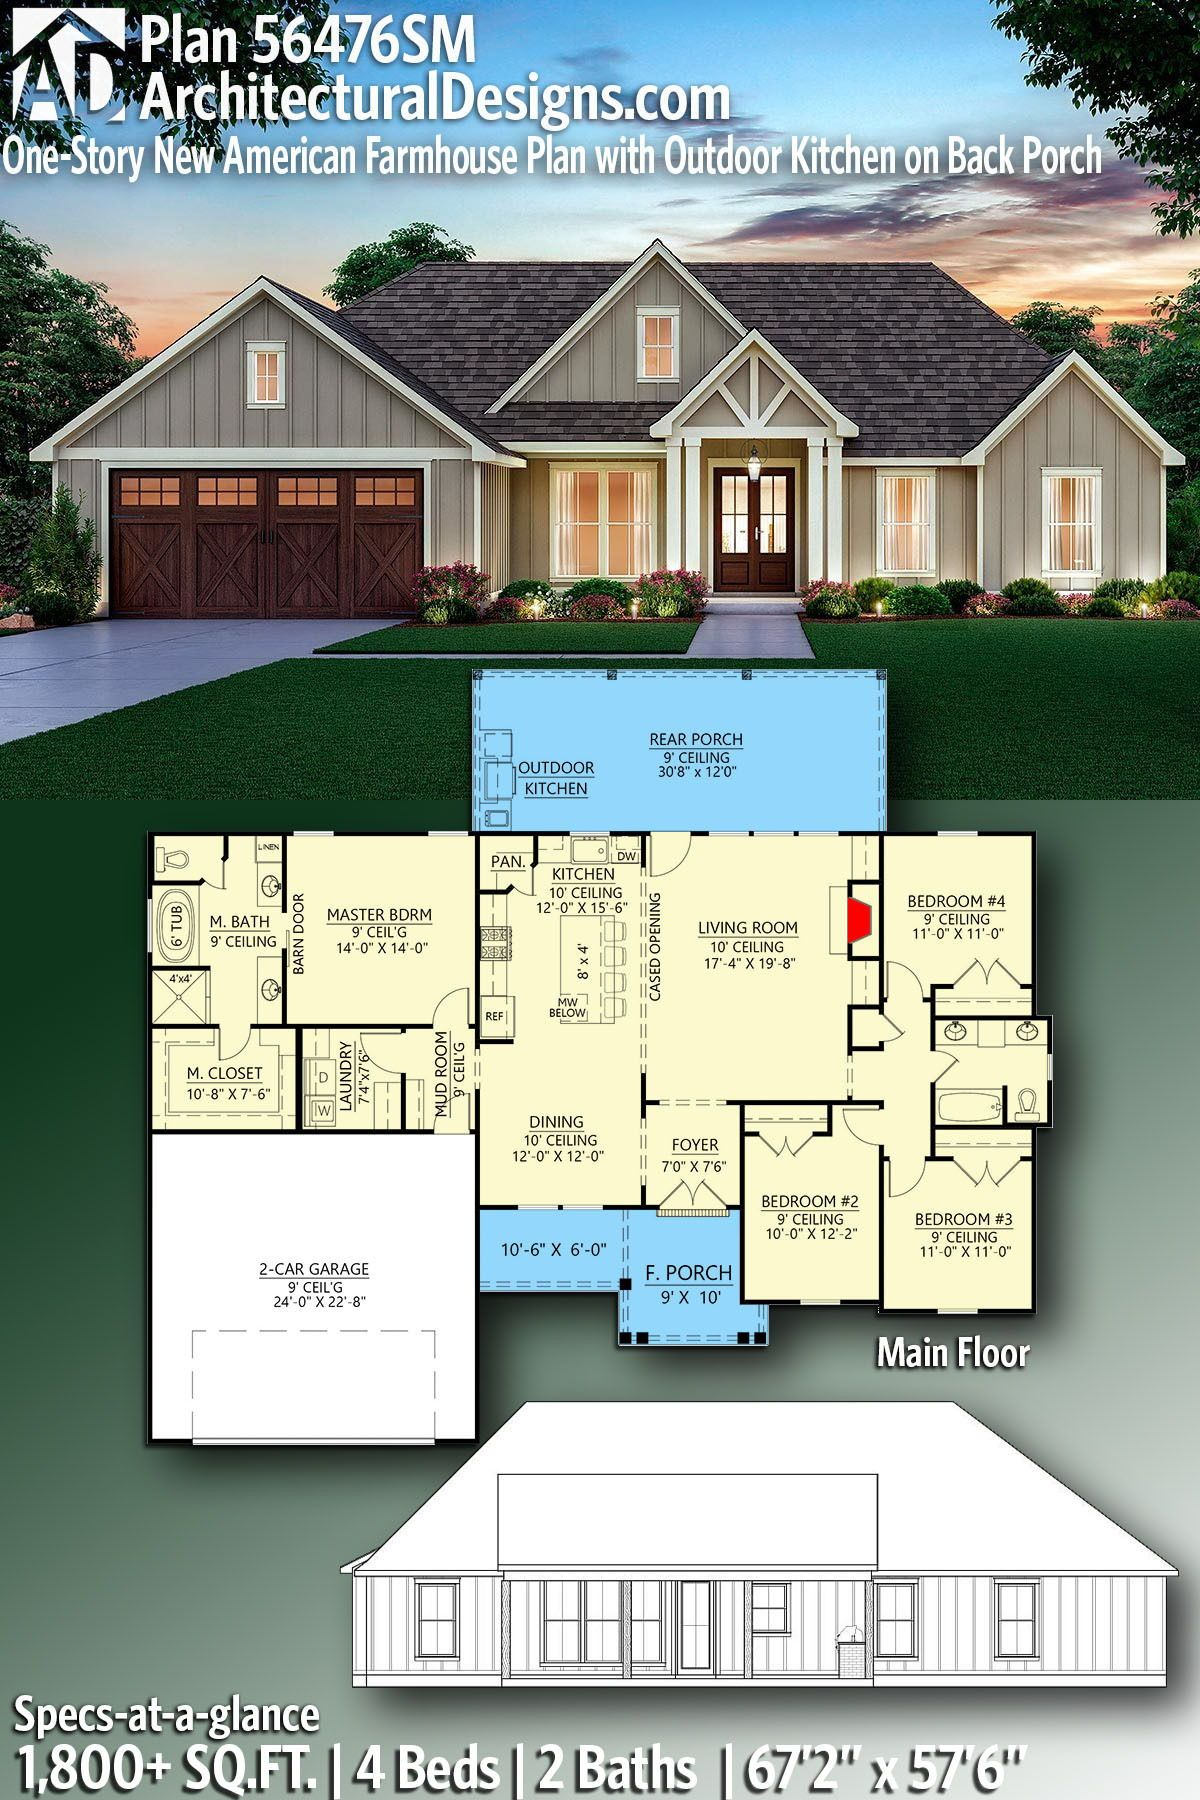 Plan 56476sm One Story New American Farmhouse Plan With Outdoor Kitchen On Back Porch In 2020 Open Floor House Plans Farmhouse Floor Plans Farmhouse Plans